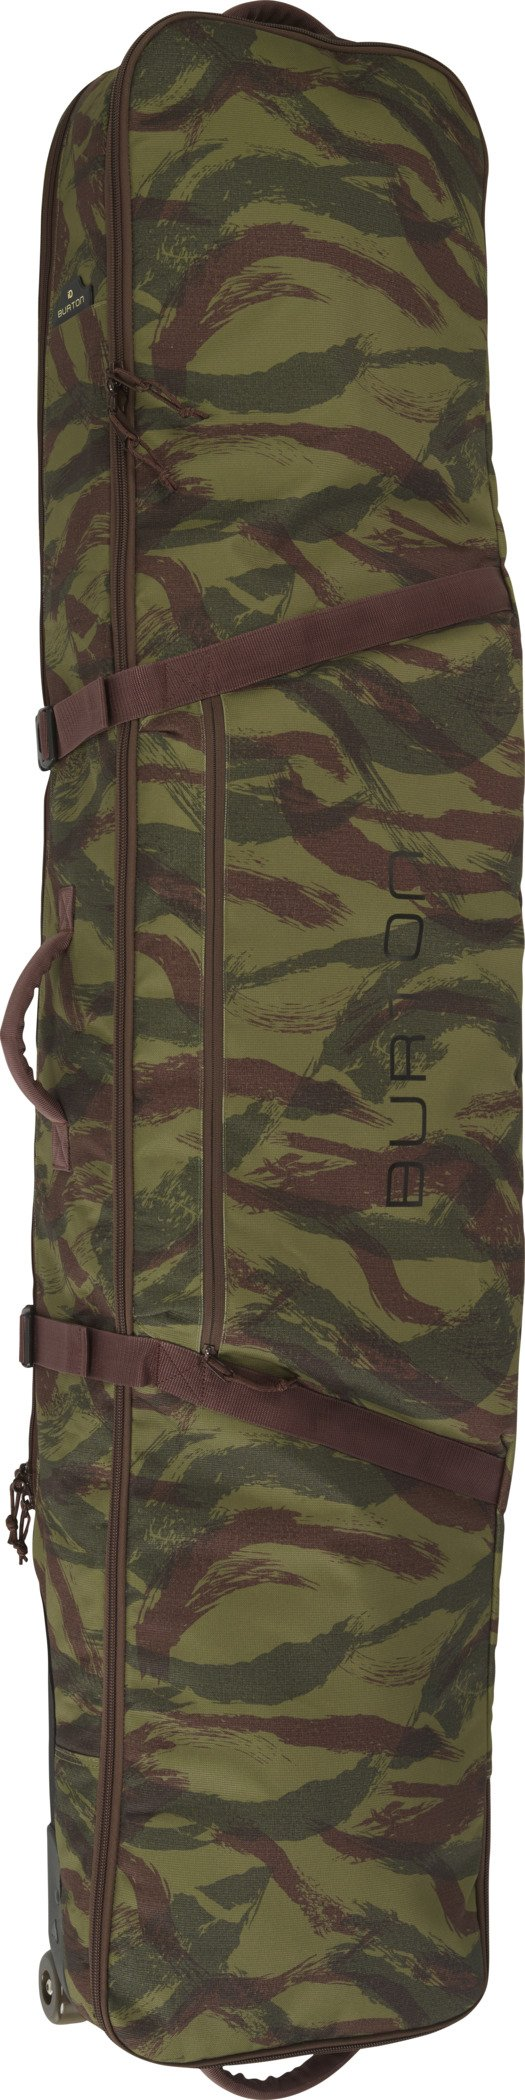 Burton Wheelie Board Bag Case Brushstroke Camo 166